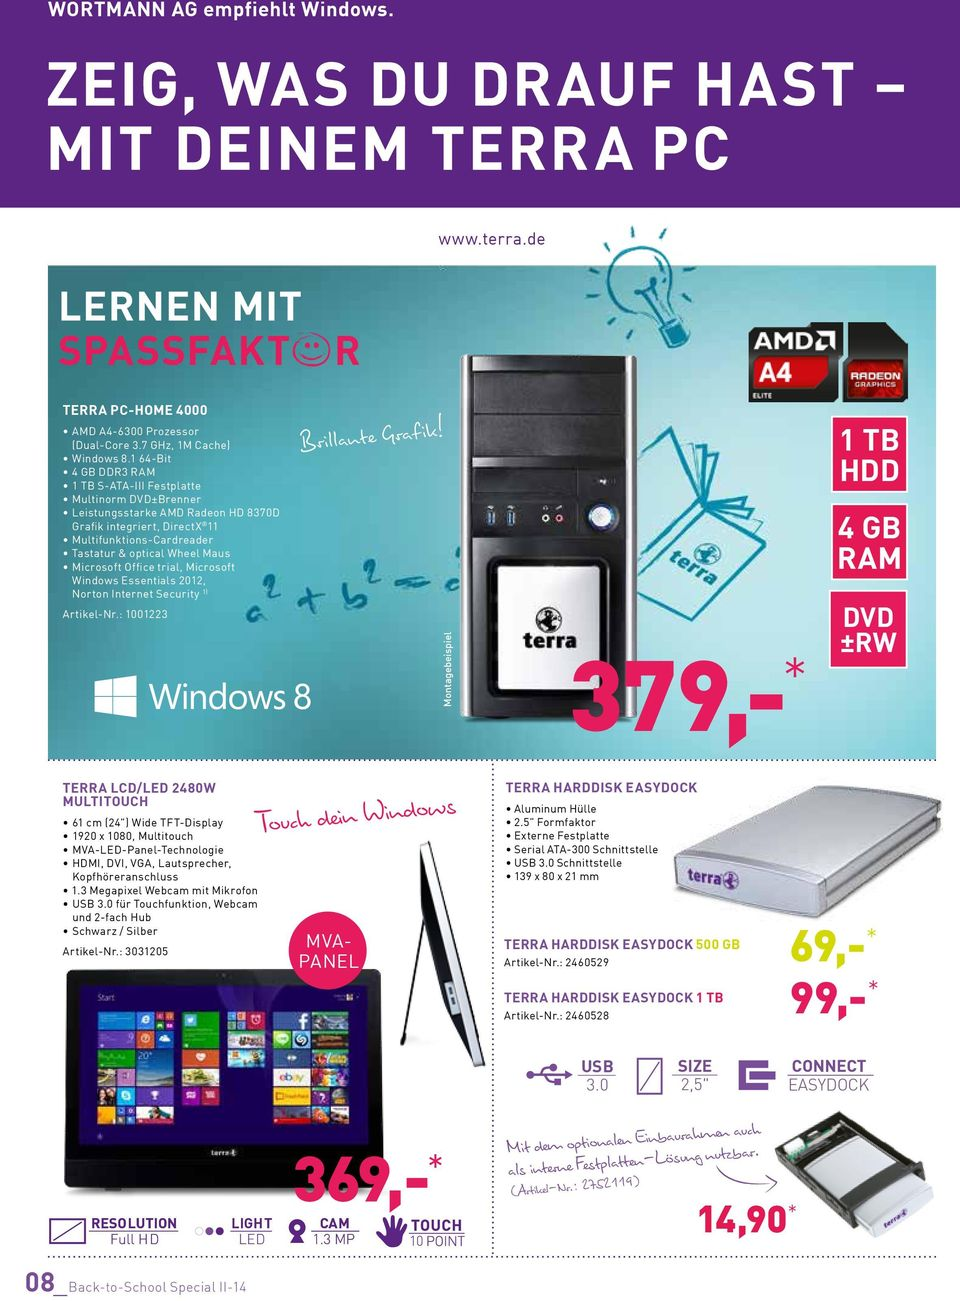 Microsoft Office trial, Microsoft Windows Essentials 2012, Norton Internet Security 1) Artikel-Nr.: 1001223 Brillante Grafik!